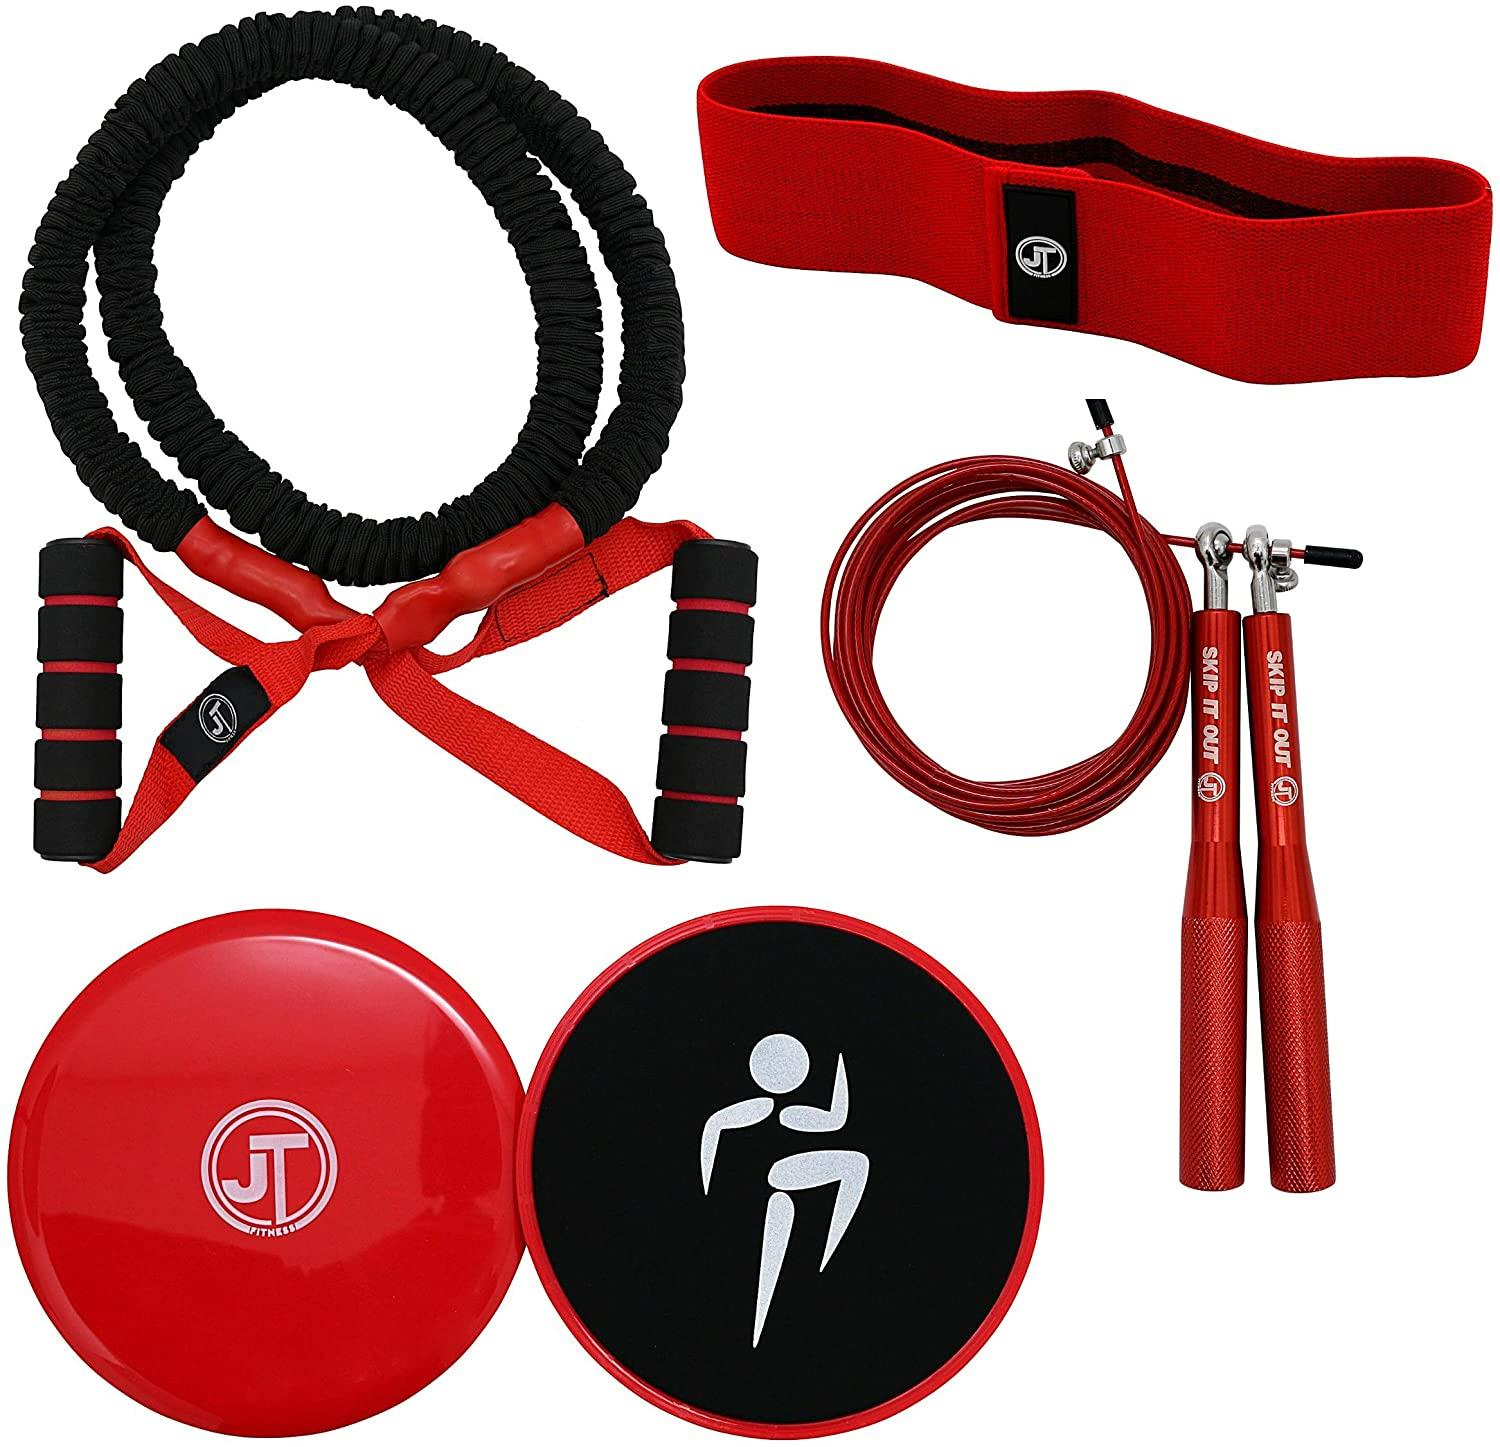 JT Fitness Booty Band Belt,Resistance Band for Legs & Glutes Fitness Band Red - smrt-life.com